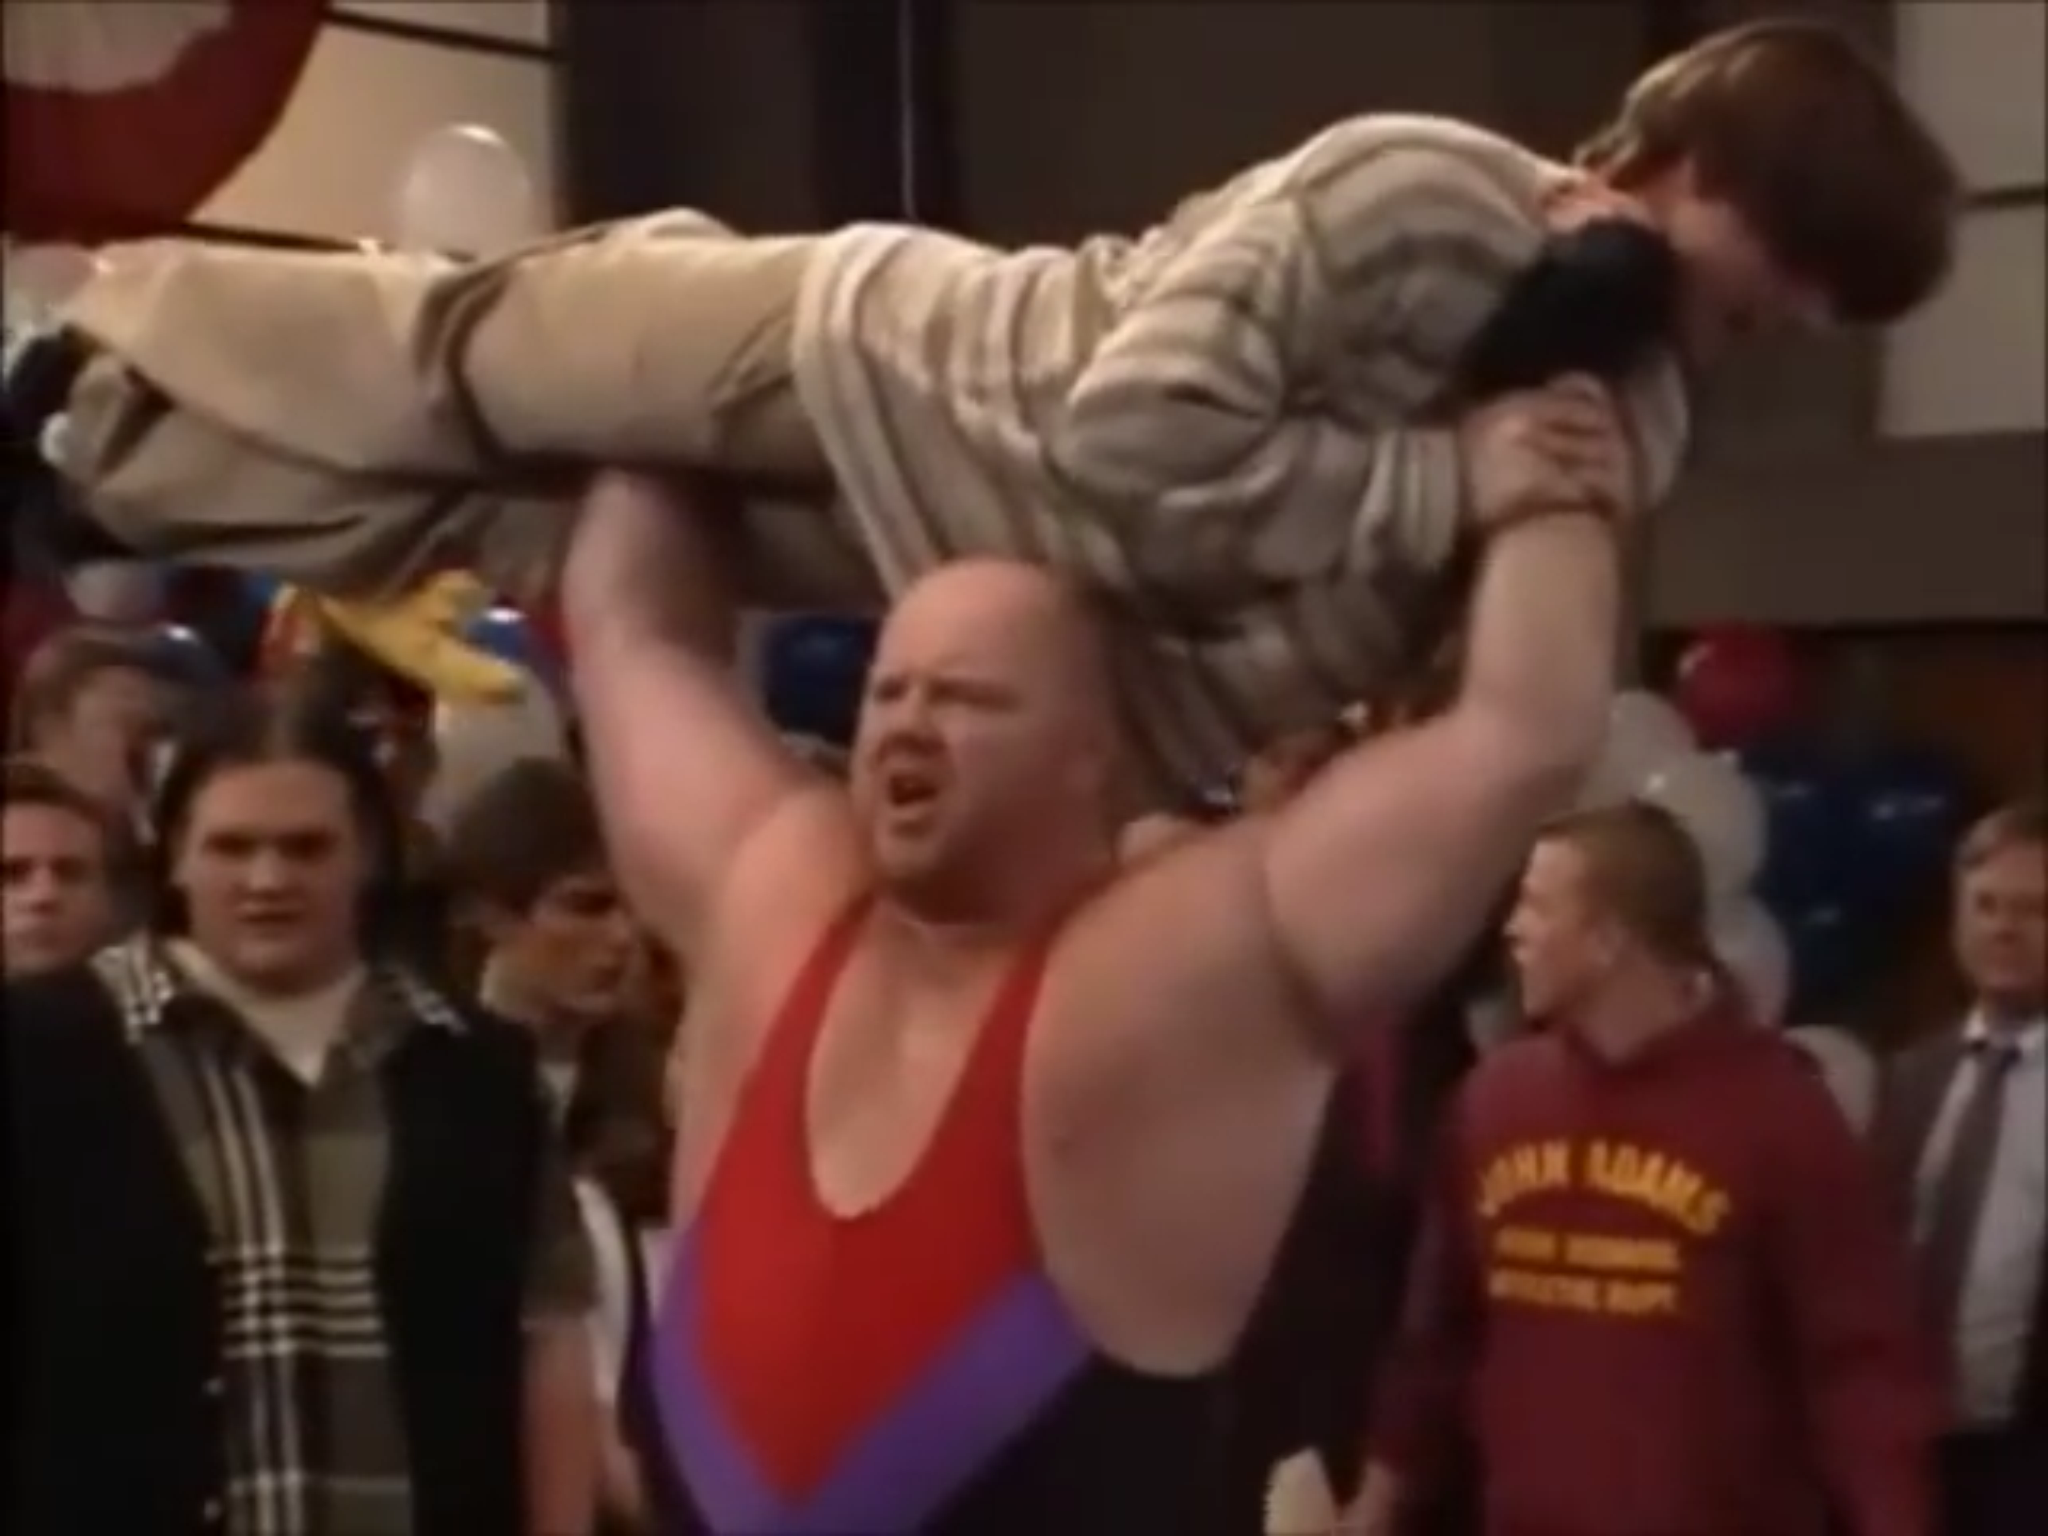 wrestling themed sitcom episodes